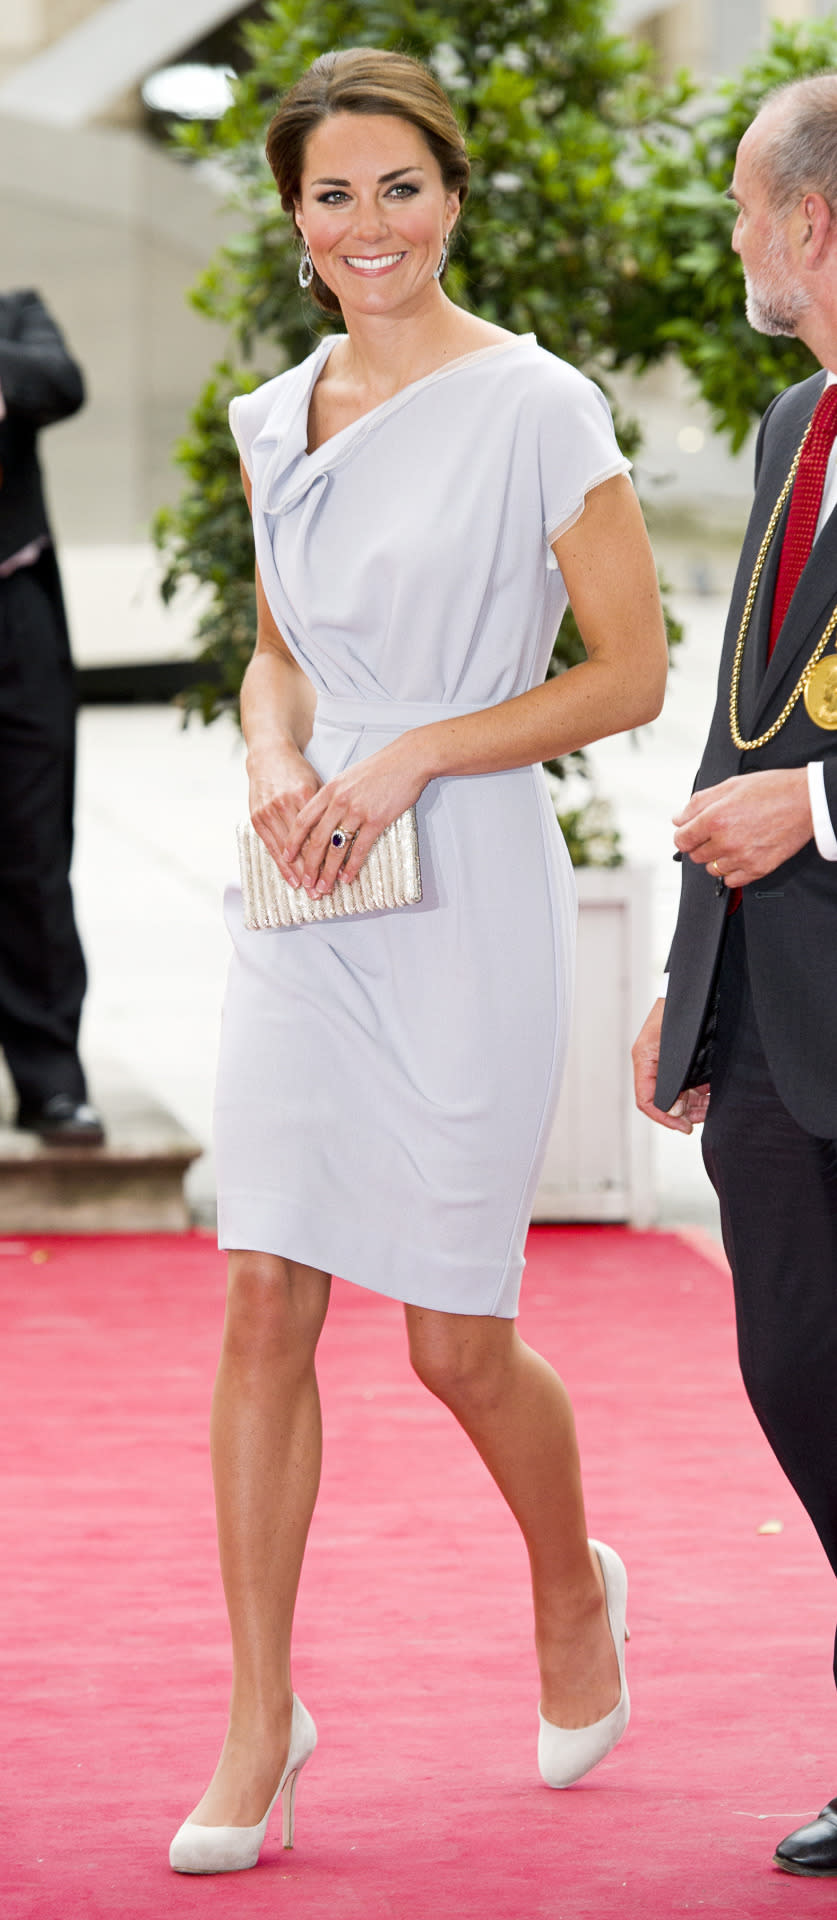 <p>Kate attended a formal reception in a dove grey Roksanda Ilincic ensemble. She paired the look with a beaded clutch and suede heels from L.K. Bennett.</p><p><i>[Photo: PA]</i></p>